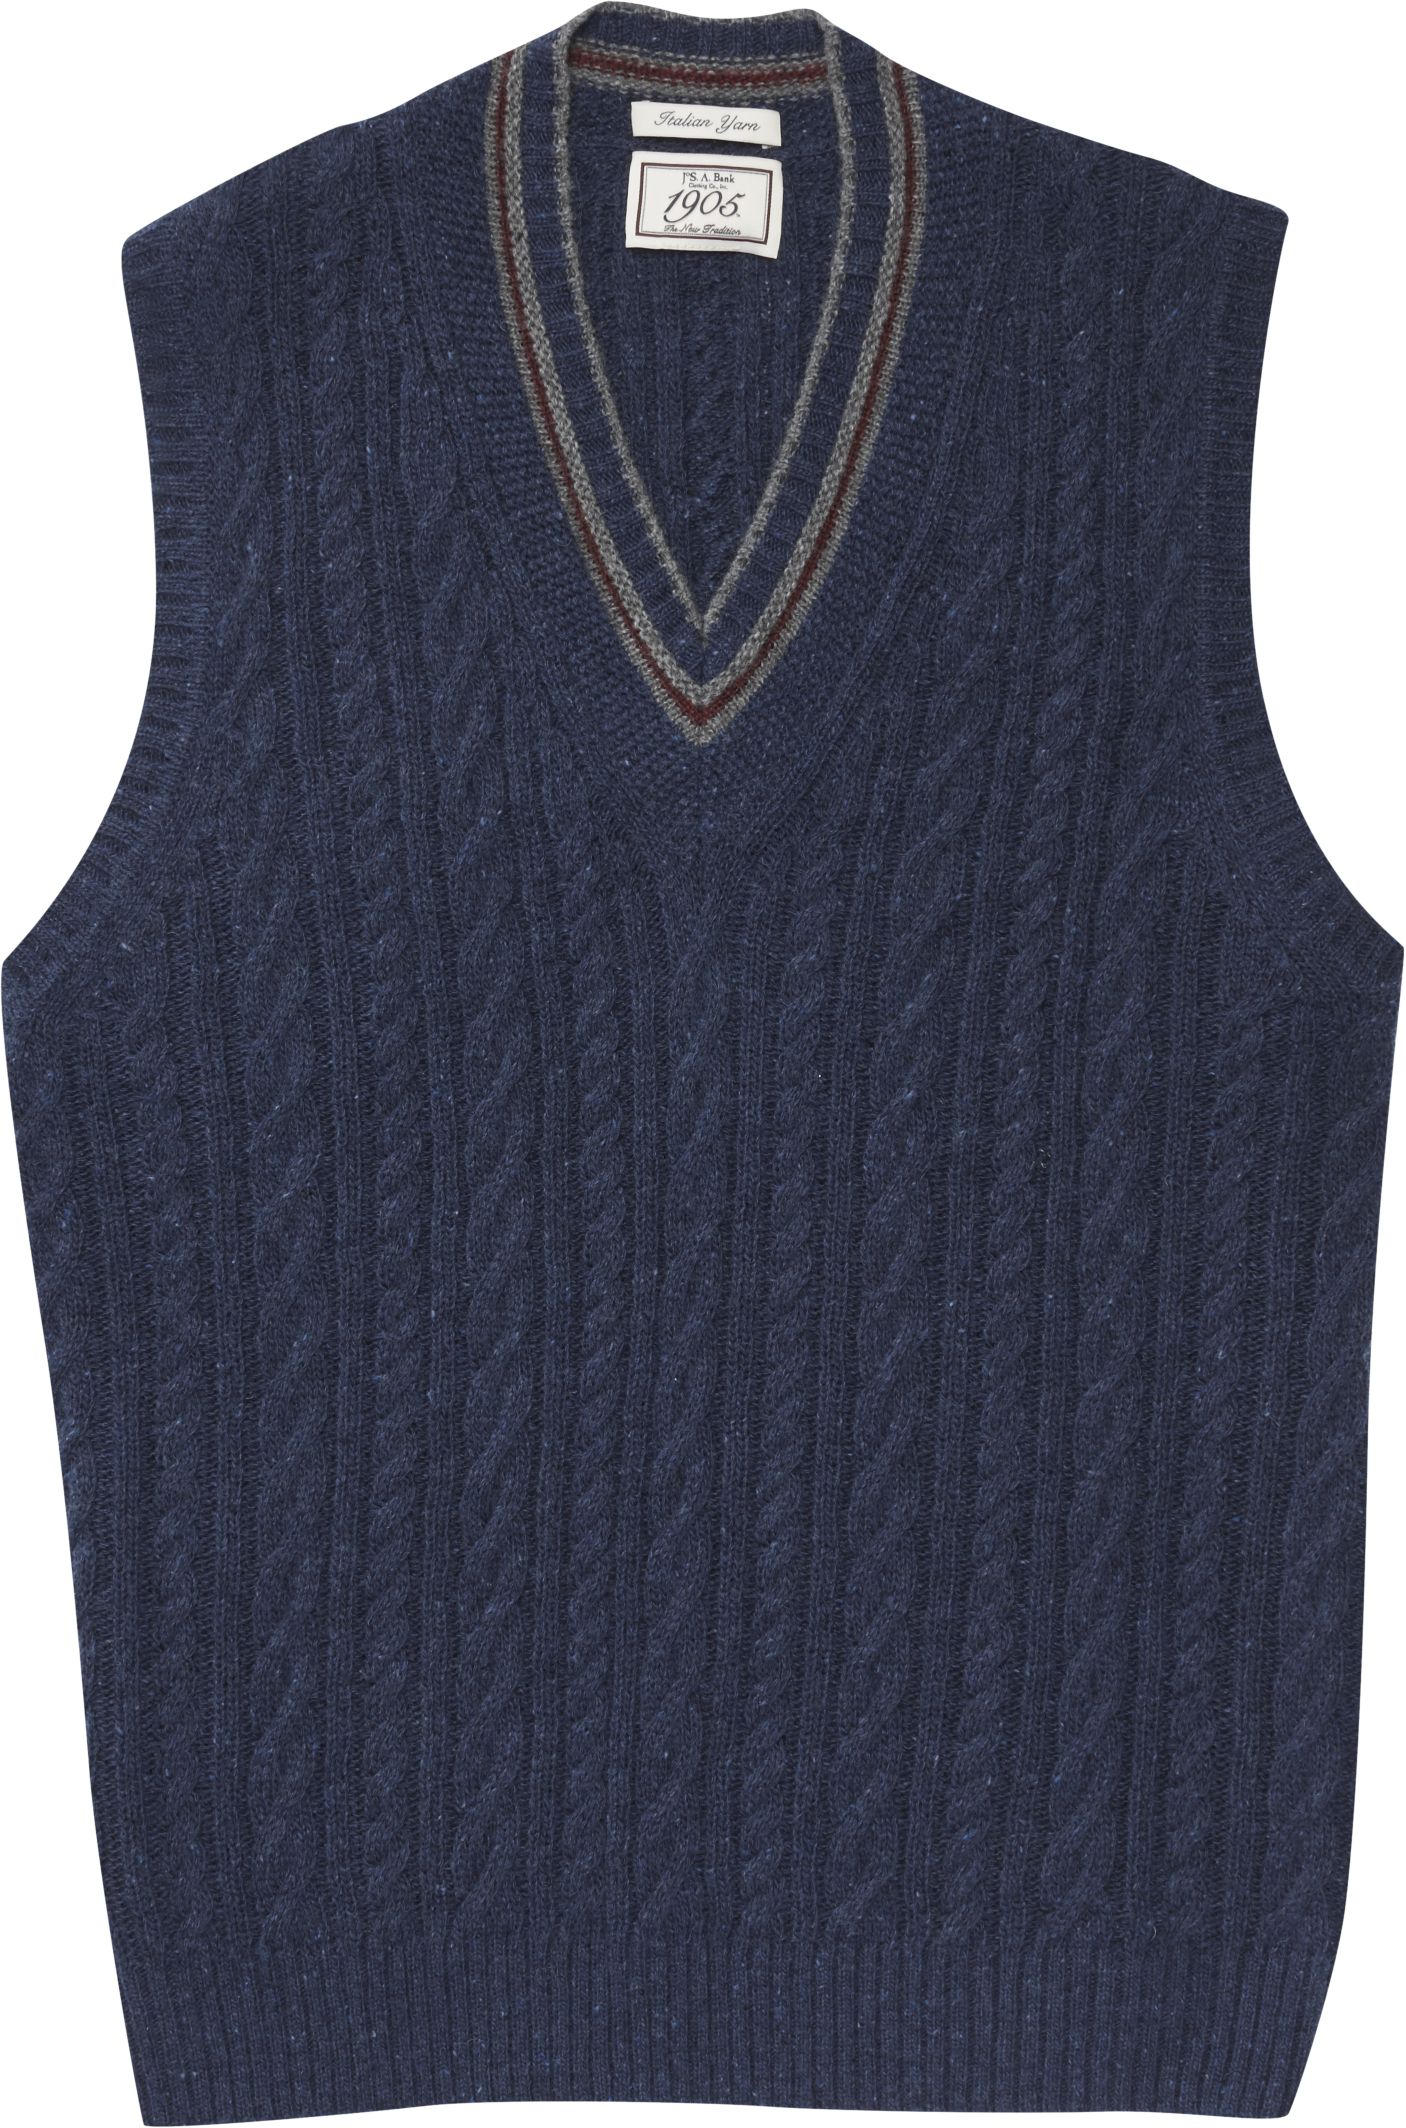 Shop Men's Clearance Sweaters & Cardigans | JoS. A. Bank